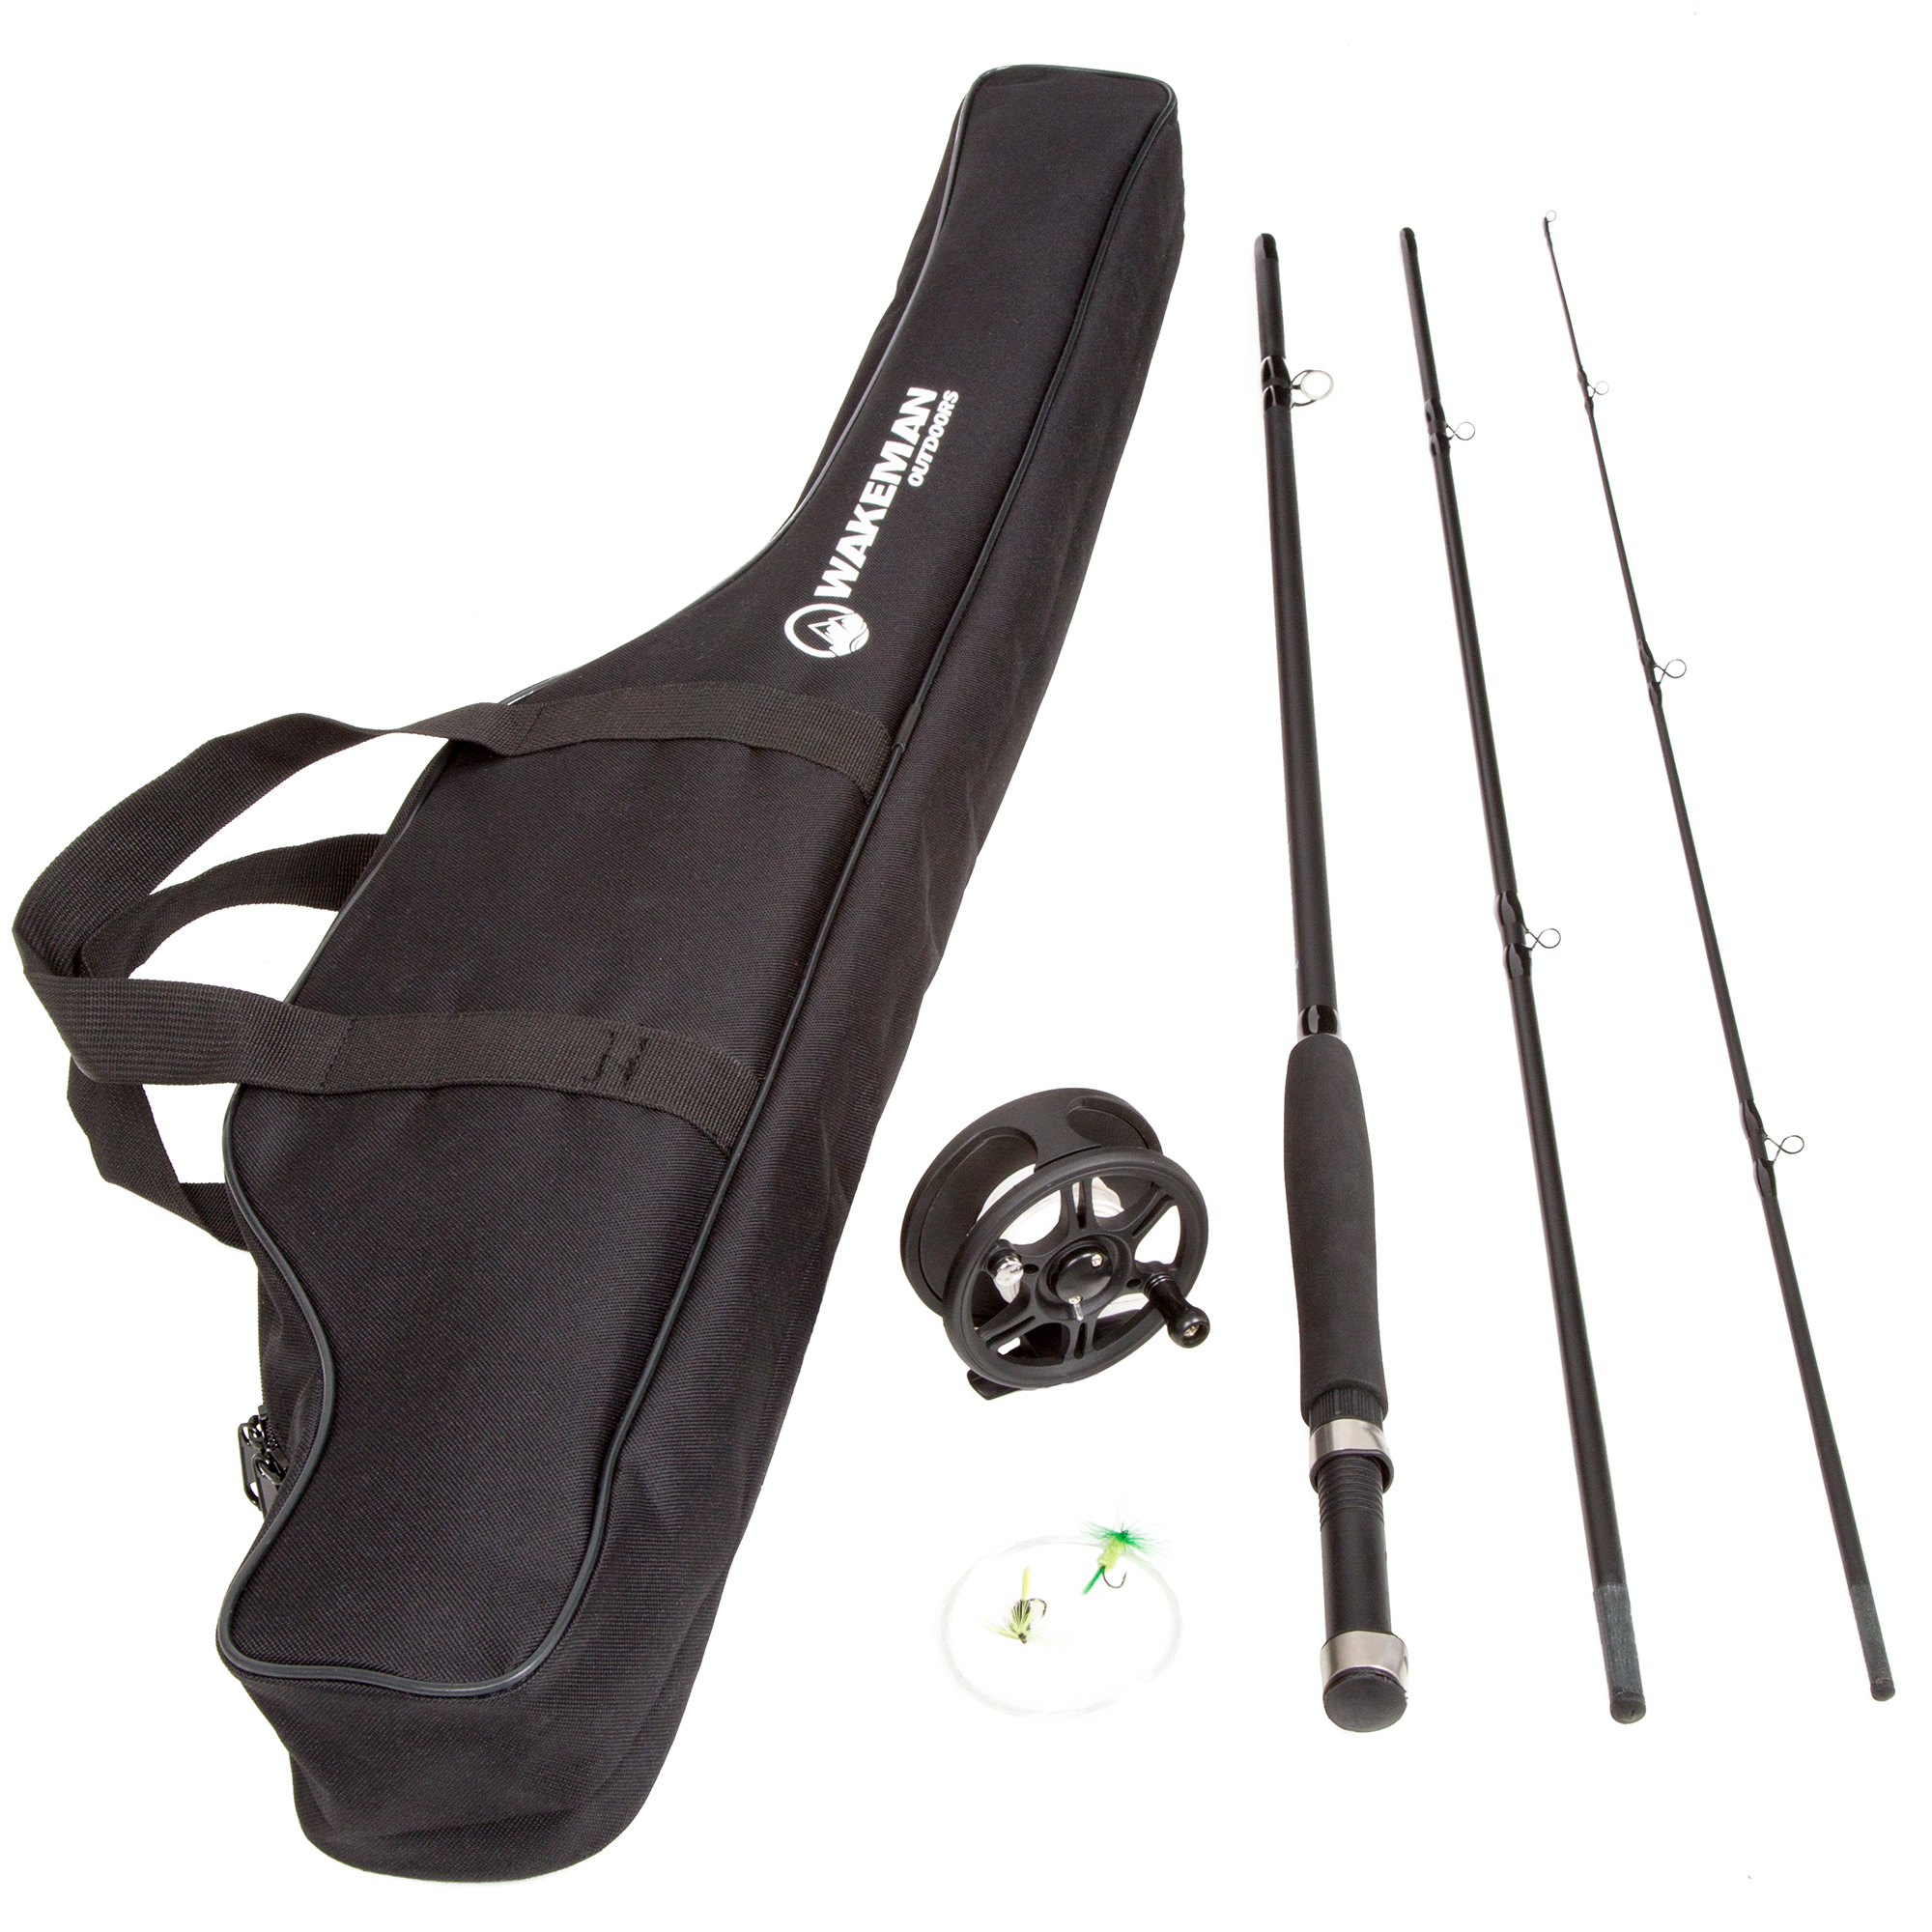 Wakeman Charter Series Fly Fishing Combo with Carry Bag - Black 40931